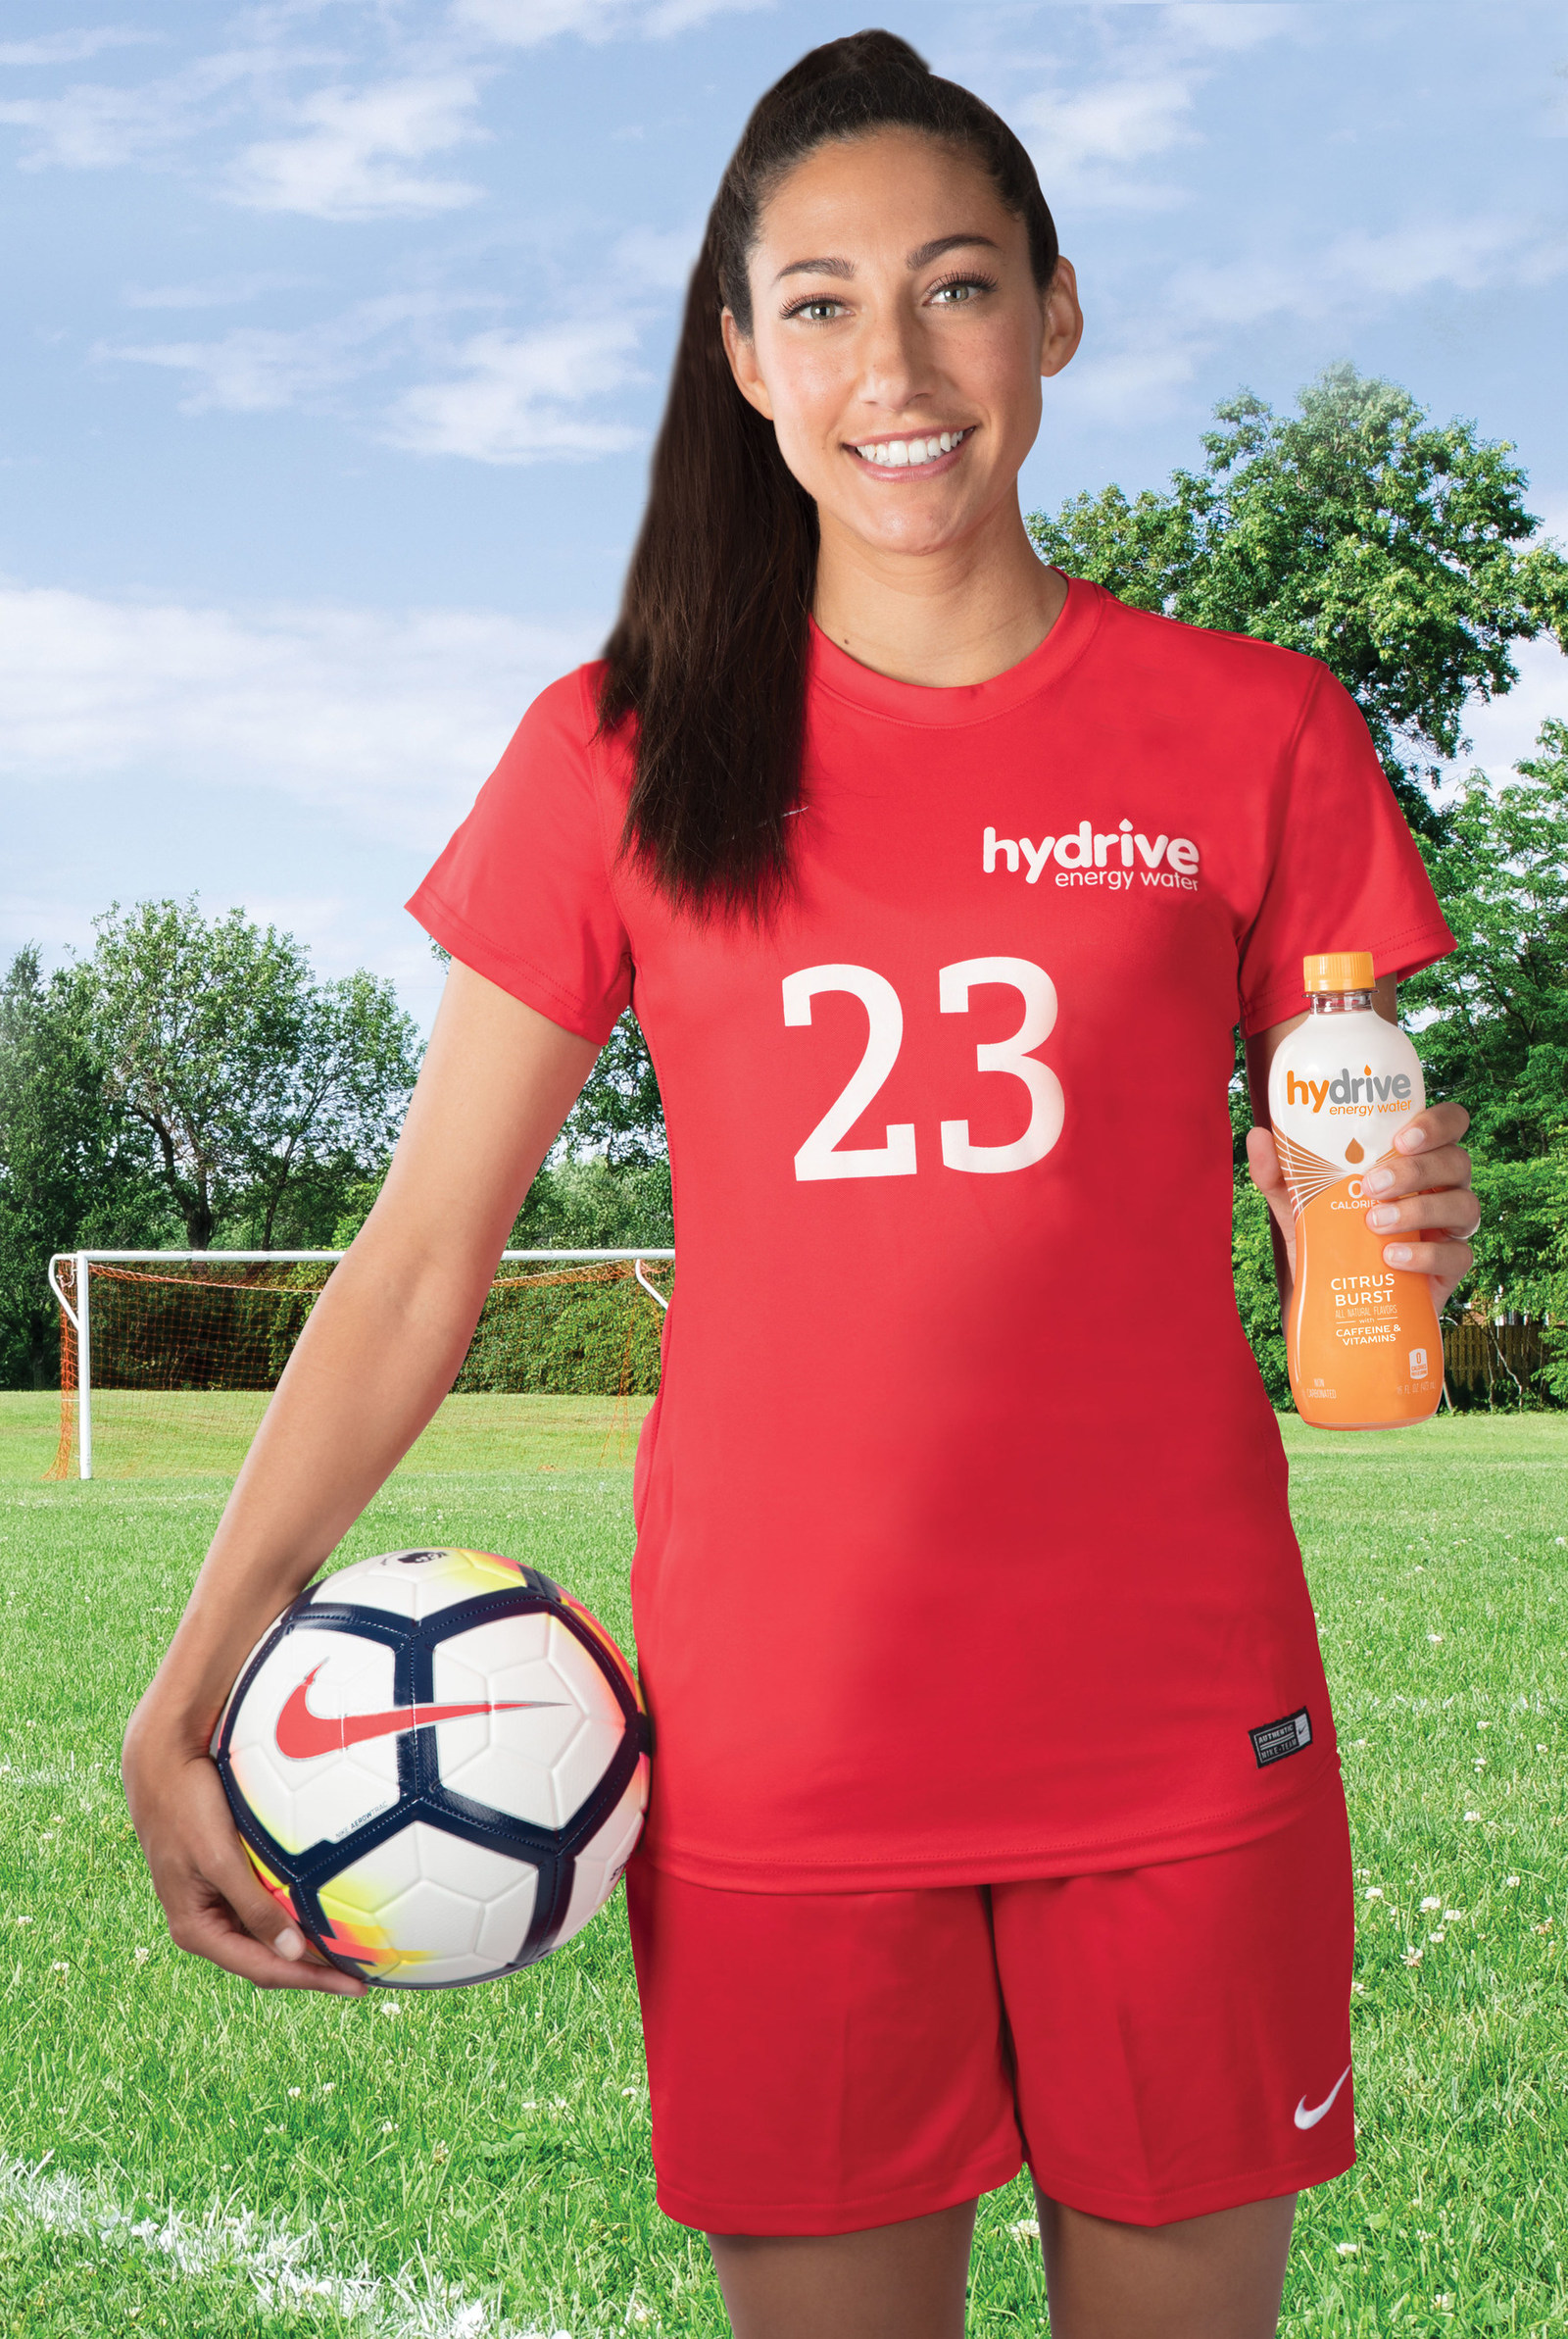 Hydrive Partners With Us Soccer Champion Christen Press